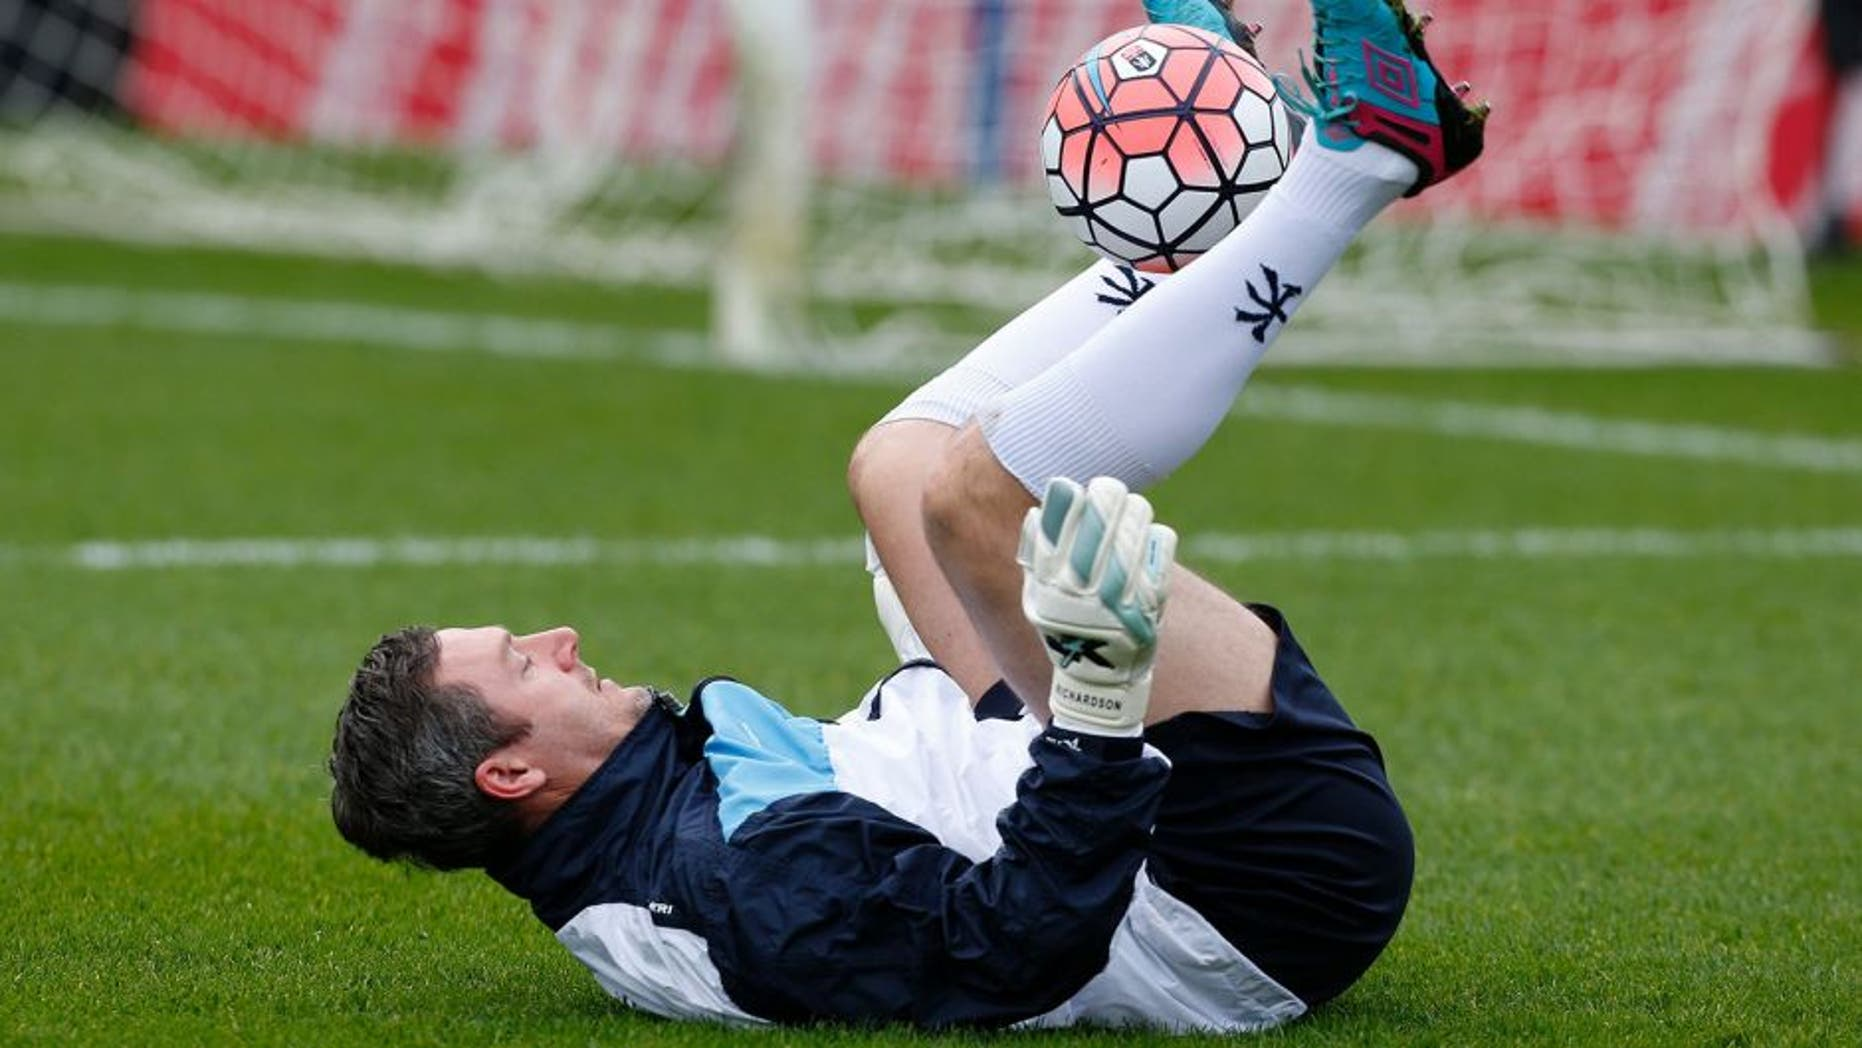 Wycombe Wanderers' goalkeeping coach Barry Richardson warms up ahead of the FA Cup third-round football match between Wycombe Wanderers and Aston Villa at the Adams Park stadium in High Wycombe, west of London on January 9, 2016. AFP PHOTO / IAN KINGTON RESTRICTED TO EDITORIAL USE. No use with unauthorized audio, video, data, fixture lists, club/league logos or 'live' services. Online in-match use limited to 75 images, no video emulation. No use in betting, games or single club/league/player publications. / AFP / IAN KINGTON (Photo credit should read IAN KINGTON/AFP/Getty Images)